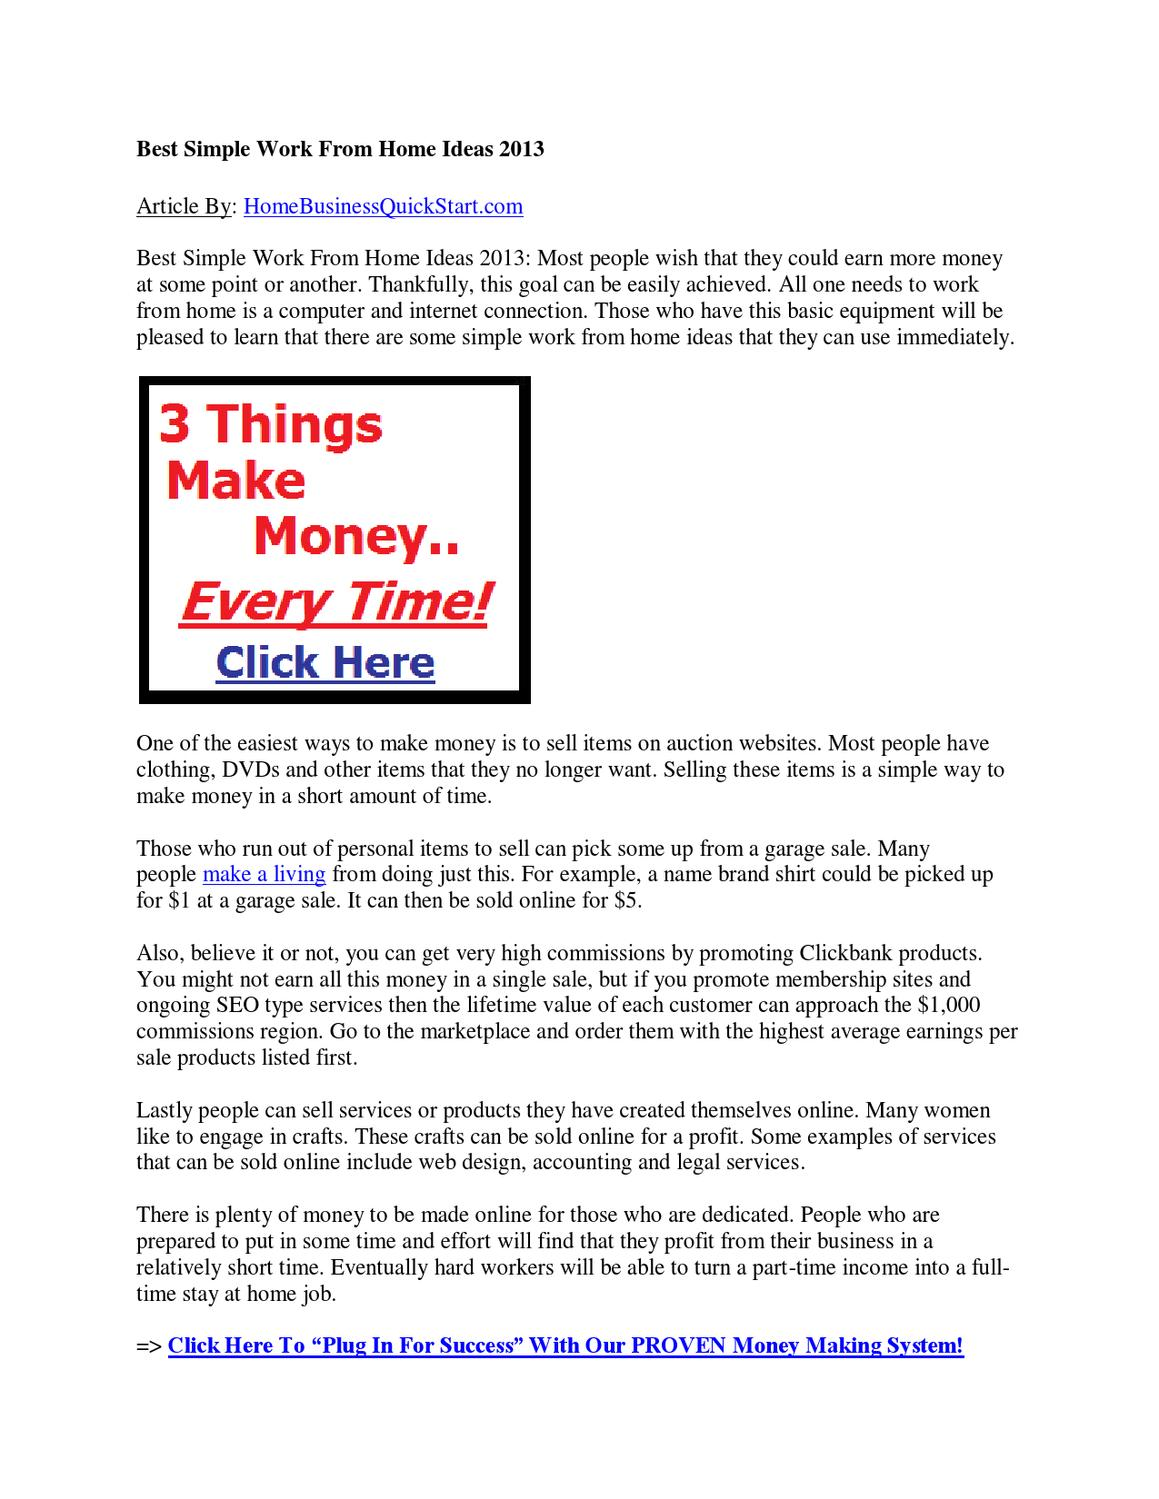 Best Simple Work From Home Ideas 2013 by affiliate marketingideas ...